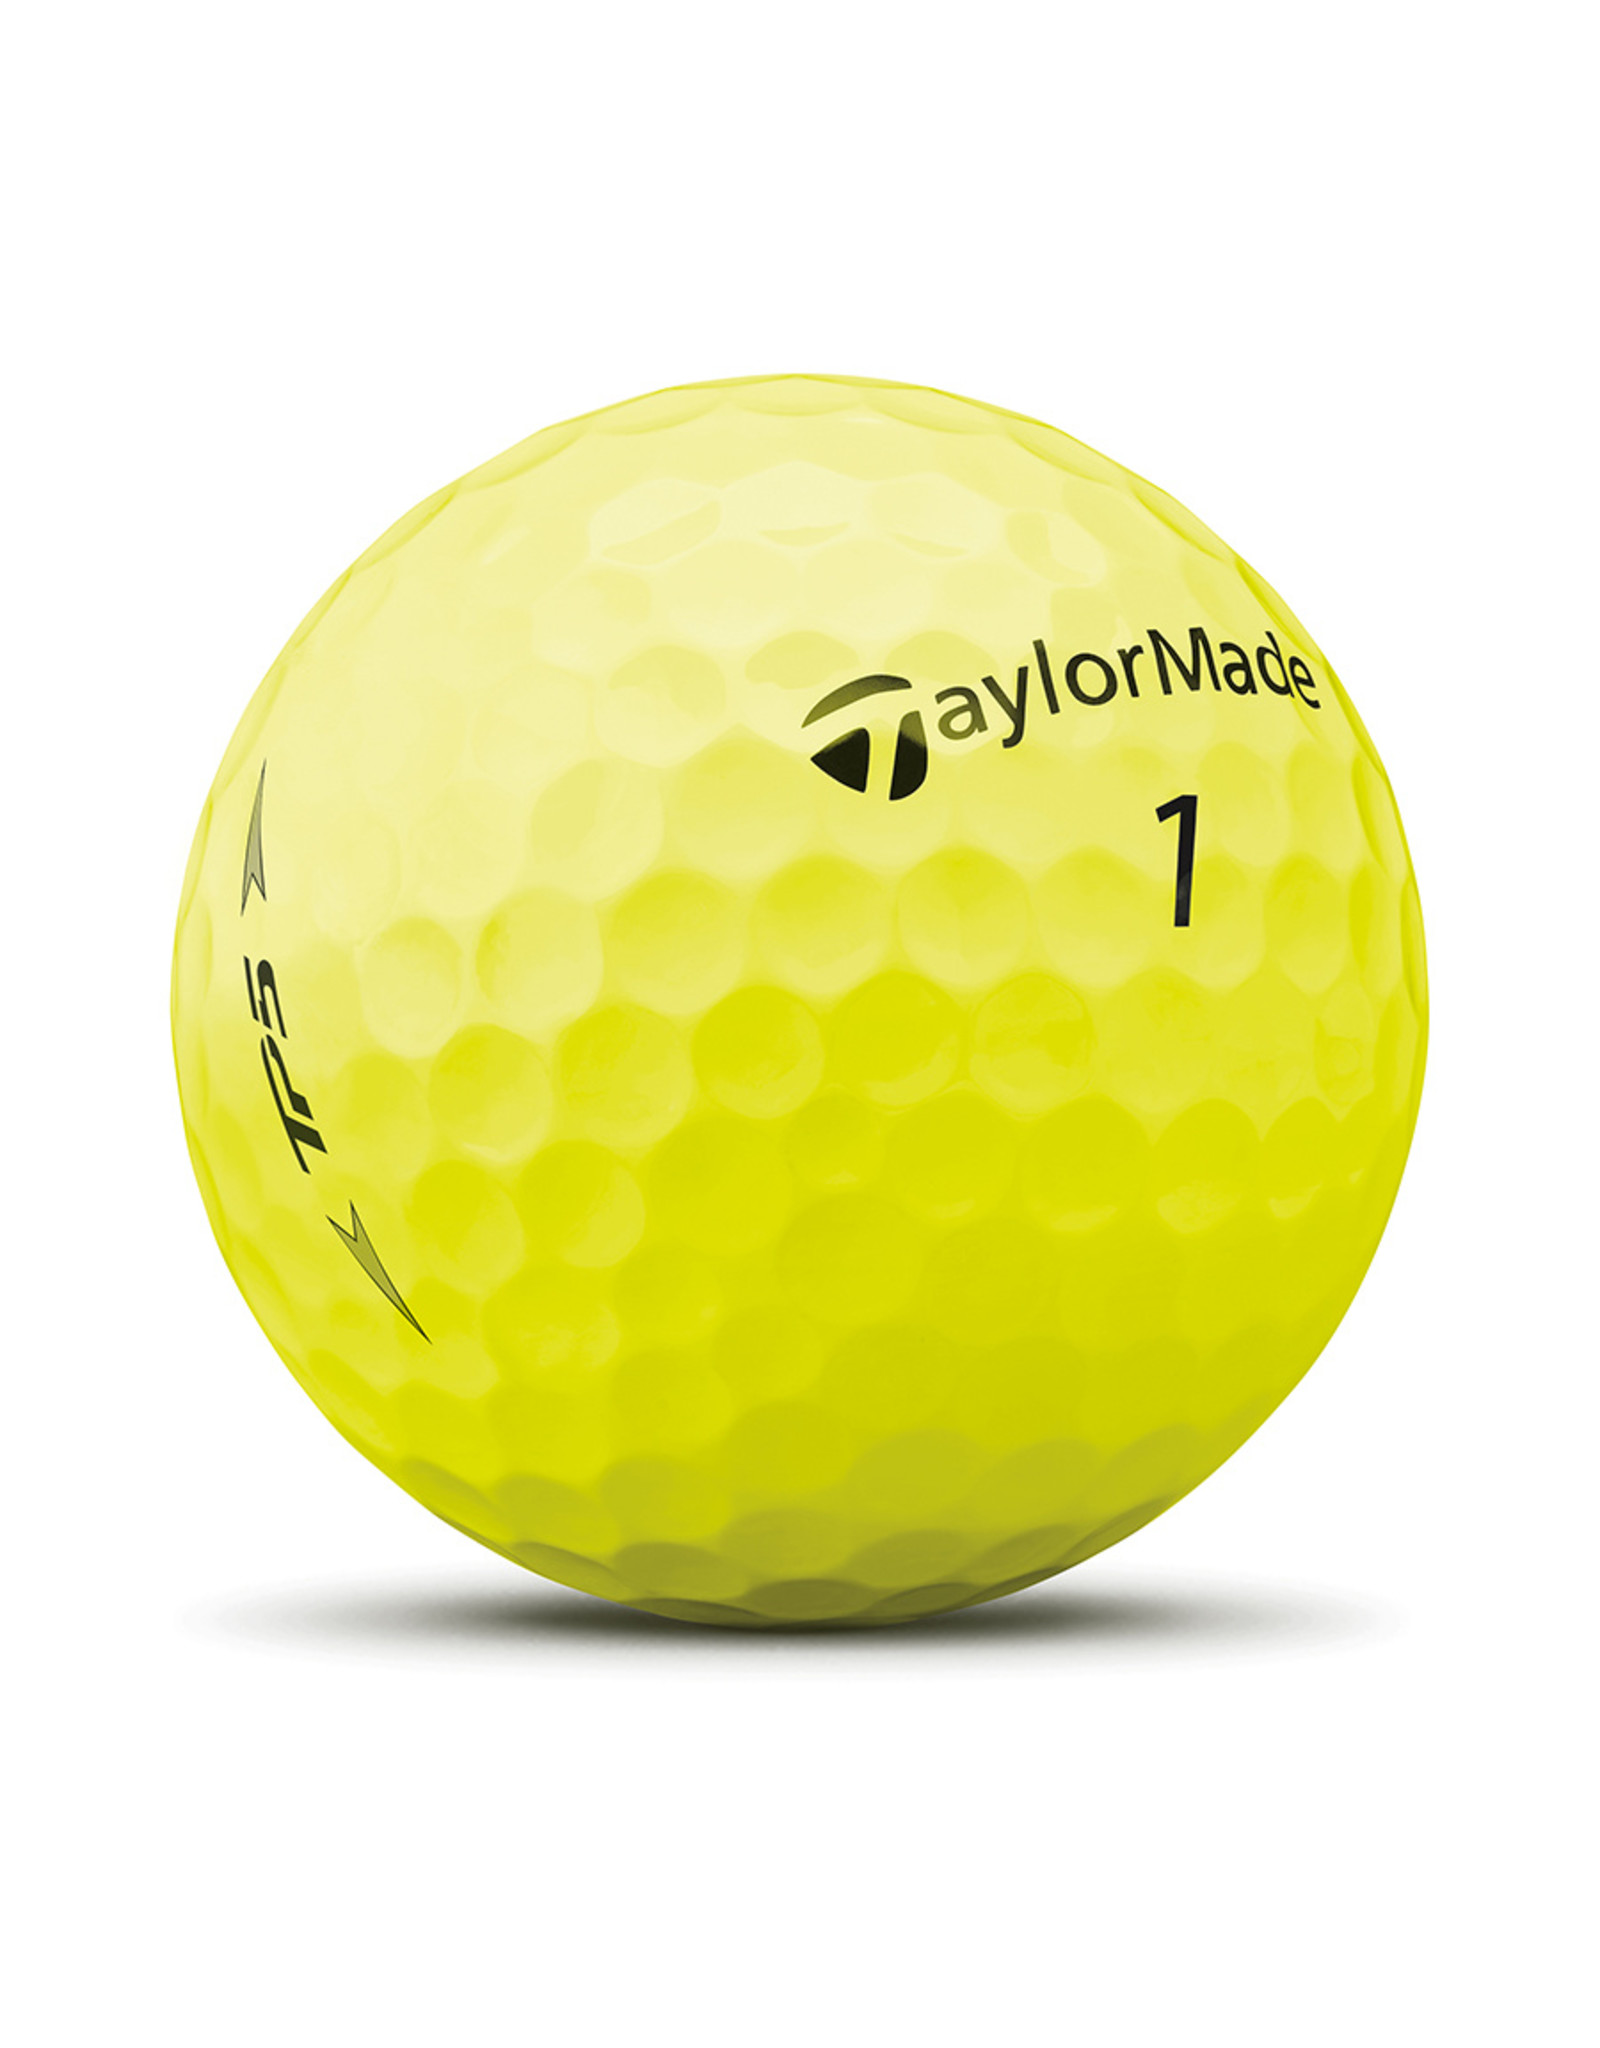 TaylorMade Taylormade TP5 YLW Dozen